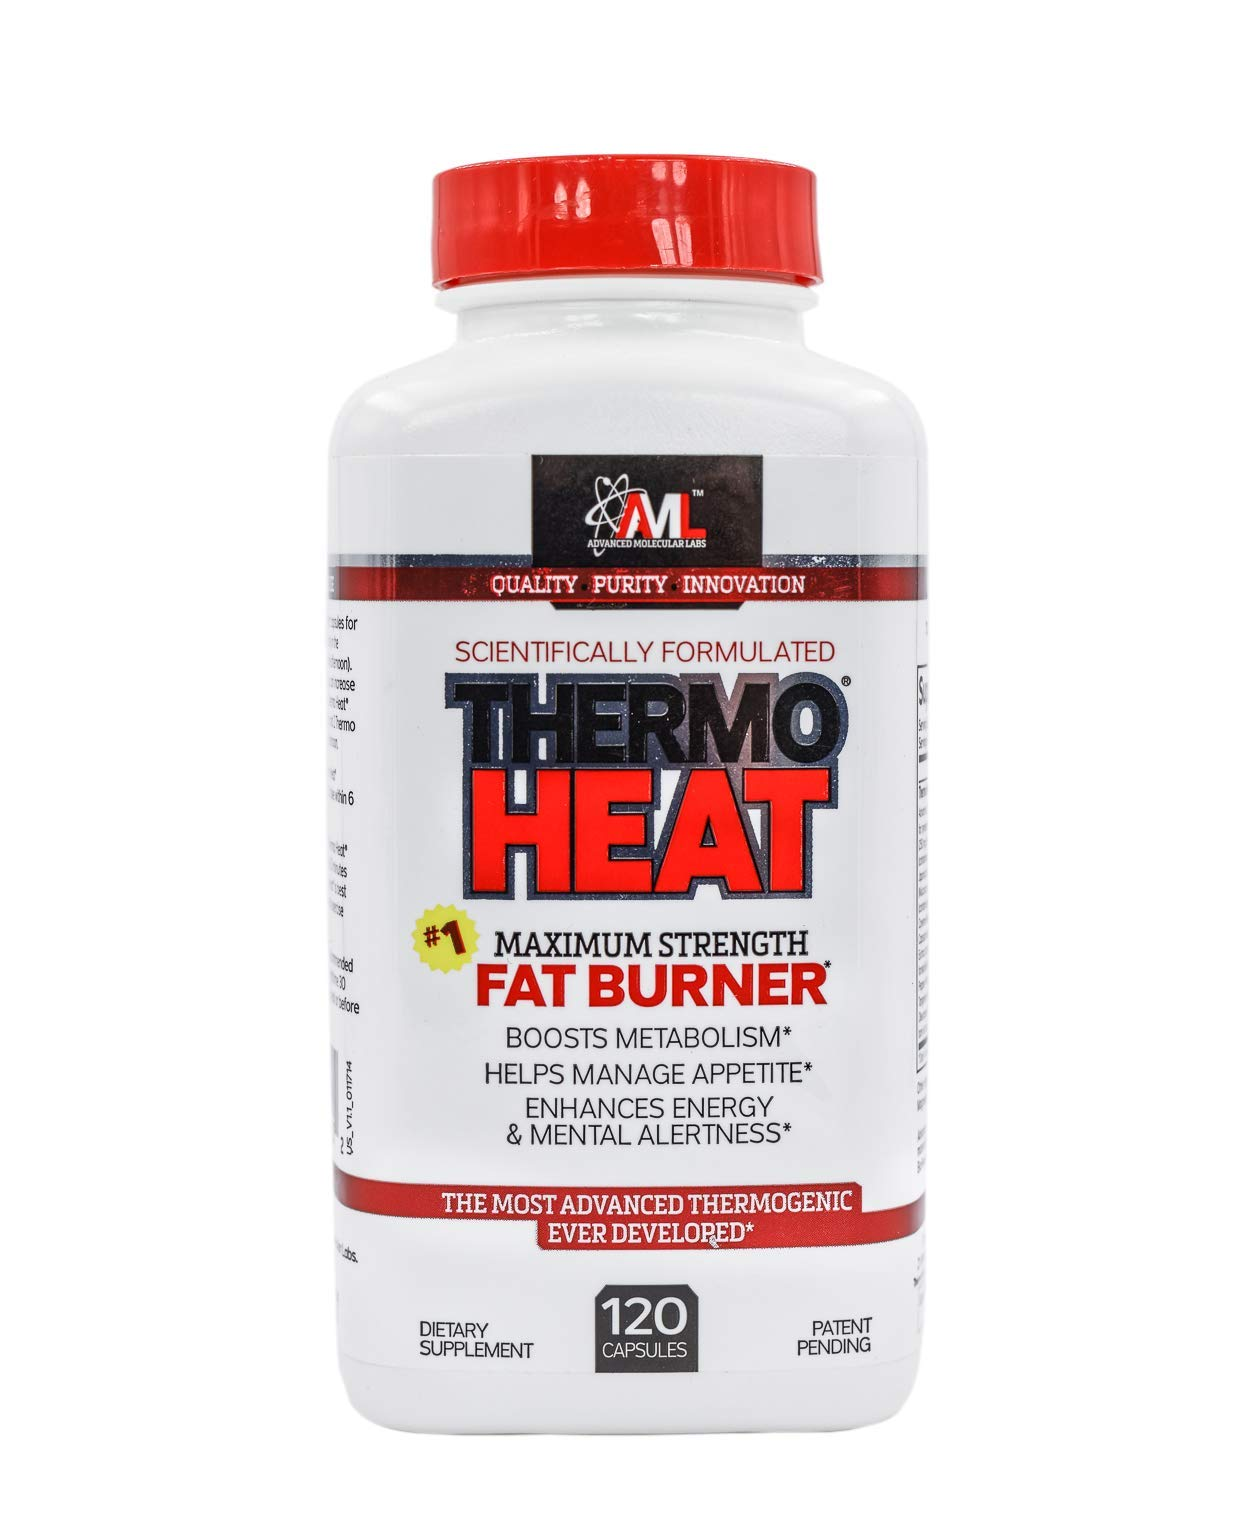 Advanced Molecular Labs - Thermo Heat Daytime, Maximum Strength Fat Burner, Boosts Metabolism, Helps Manage Appetite,120 Capsules